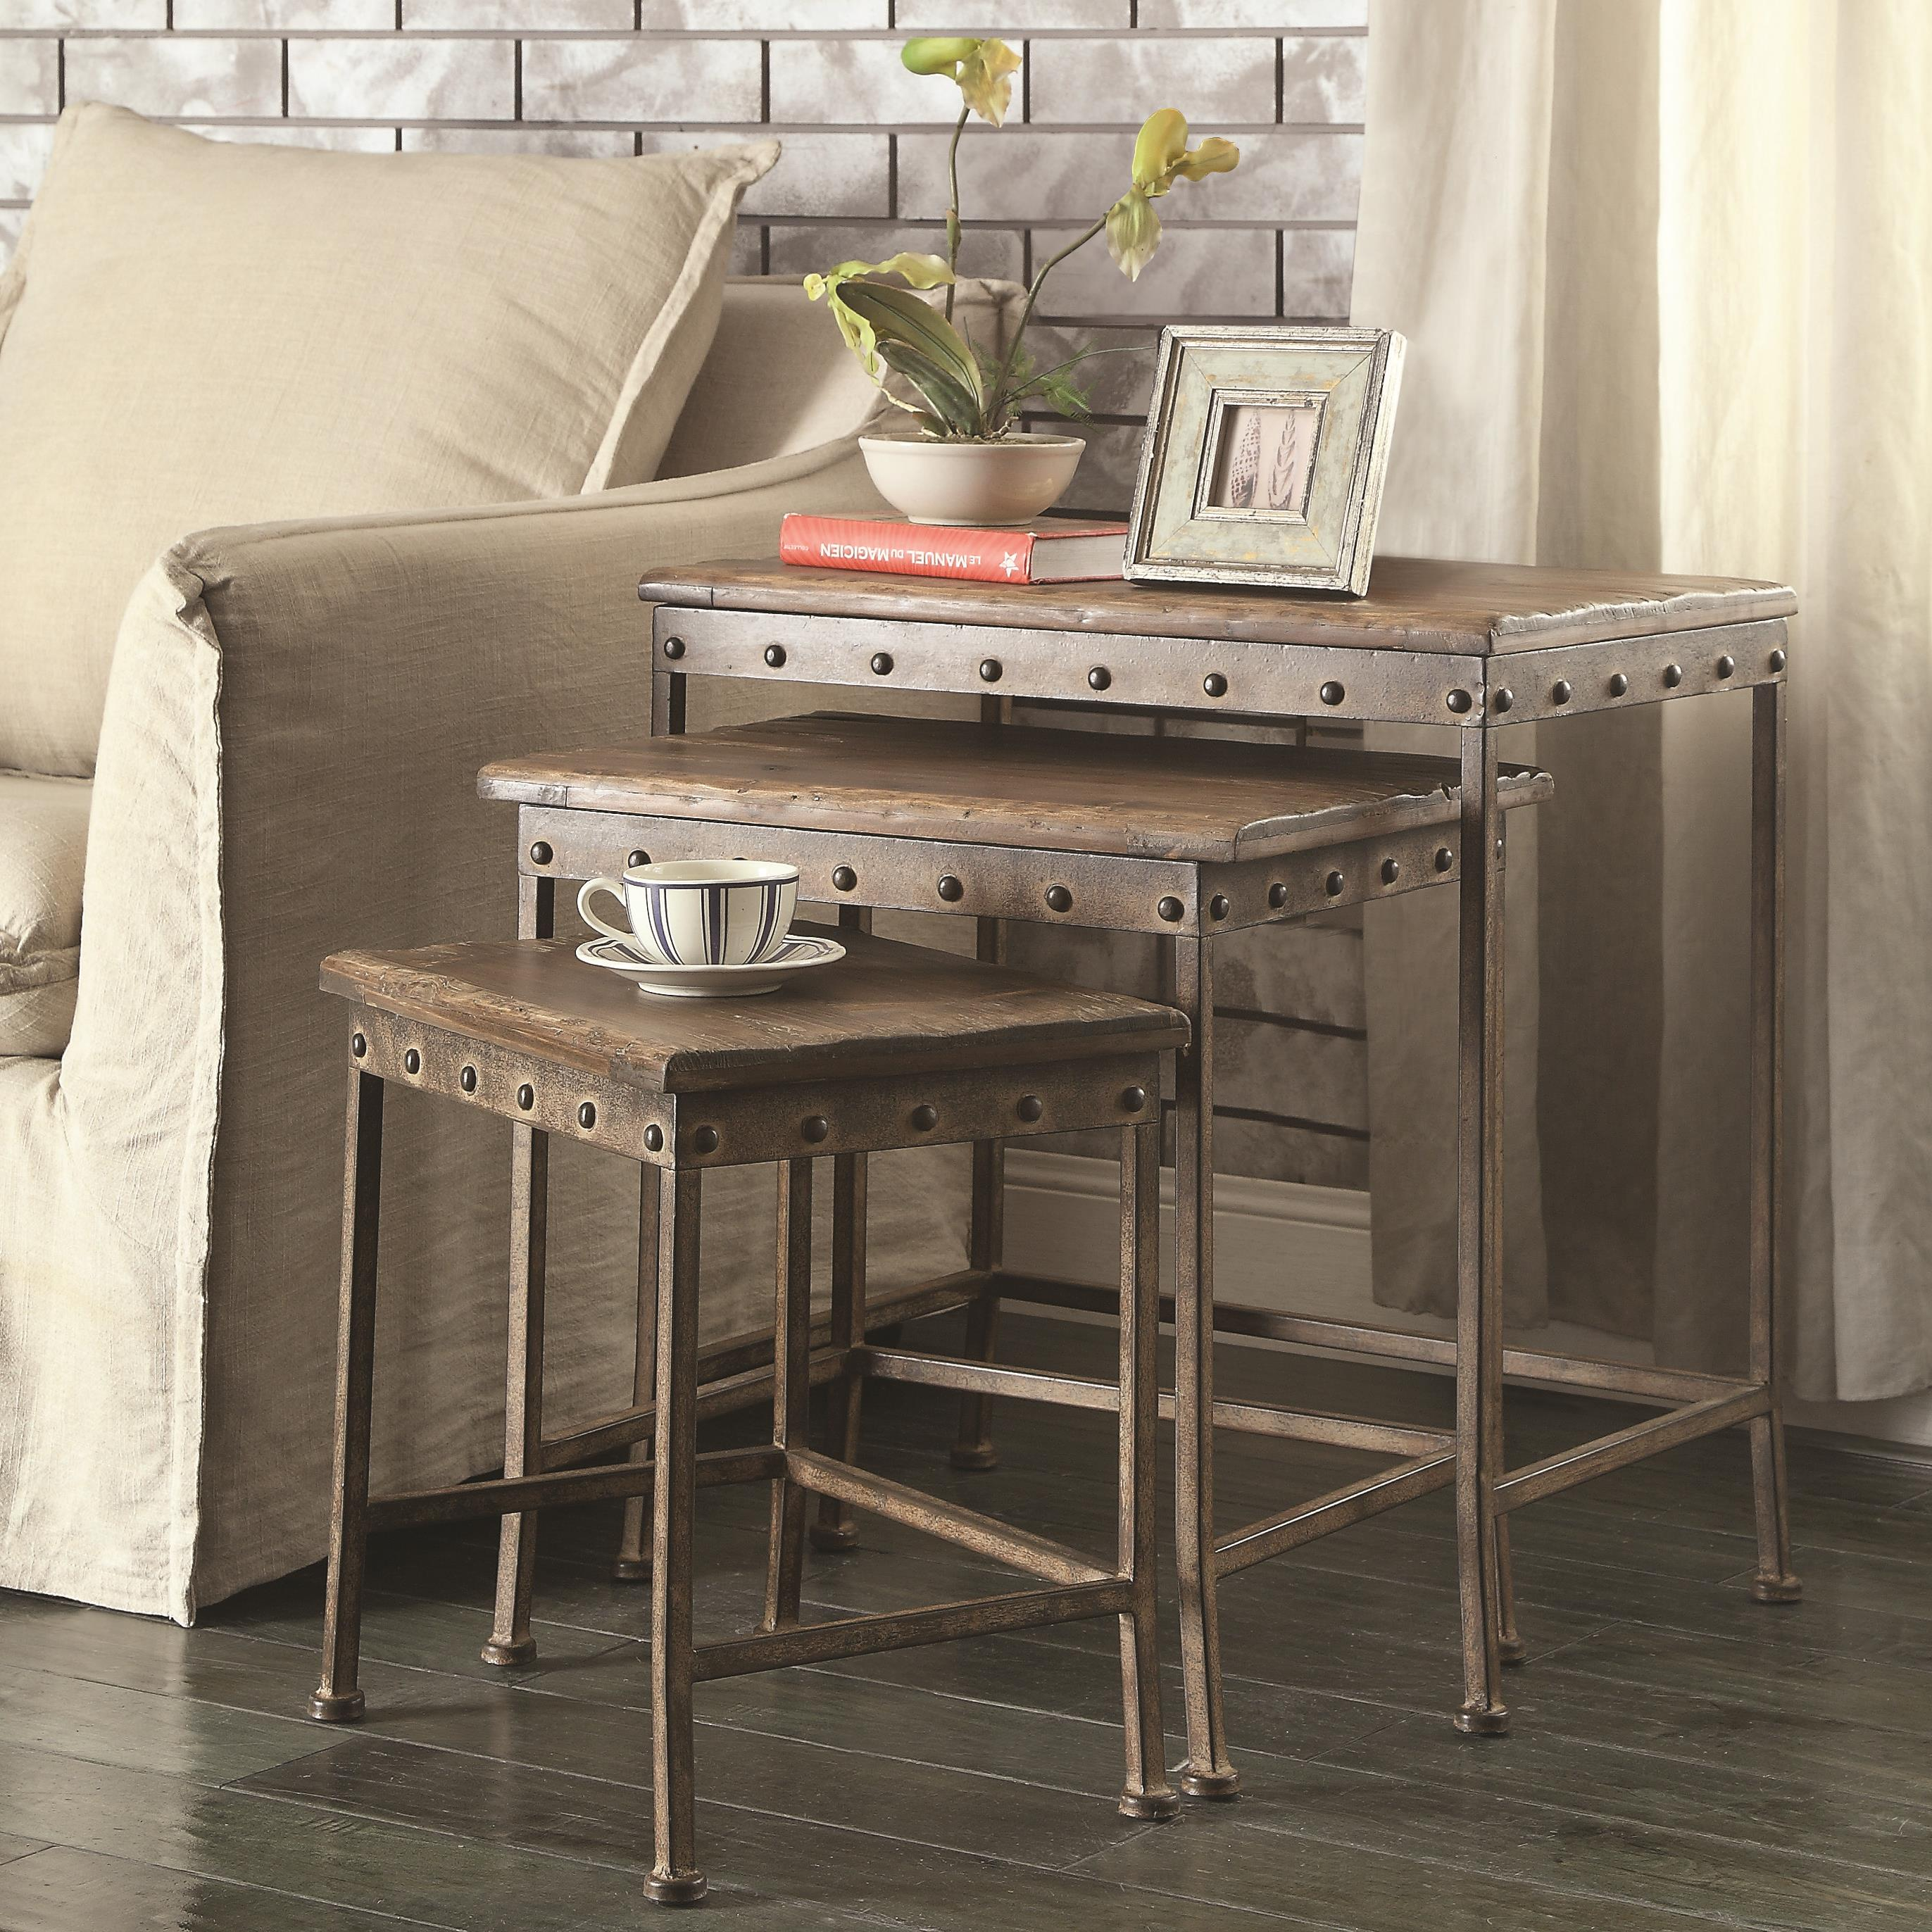 Coaster Nesting Tables Nesting Table - Item Number: 901373